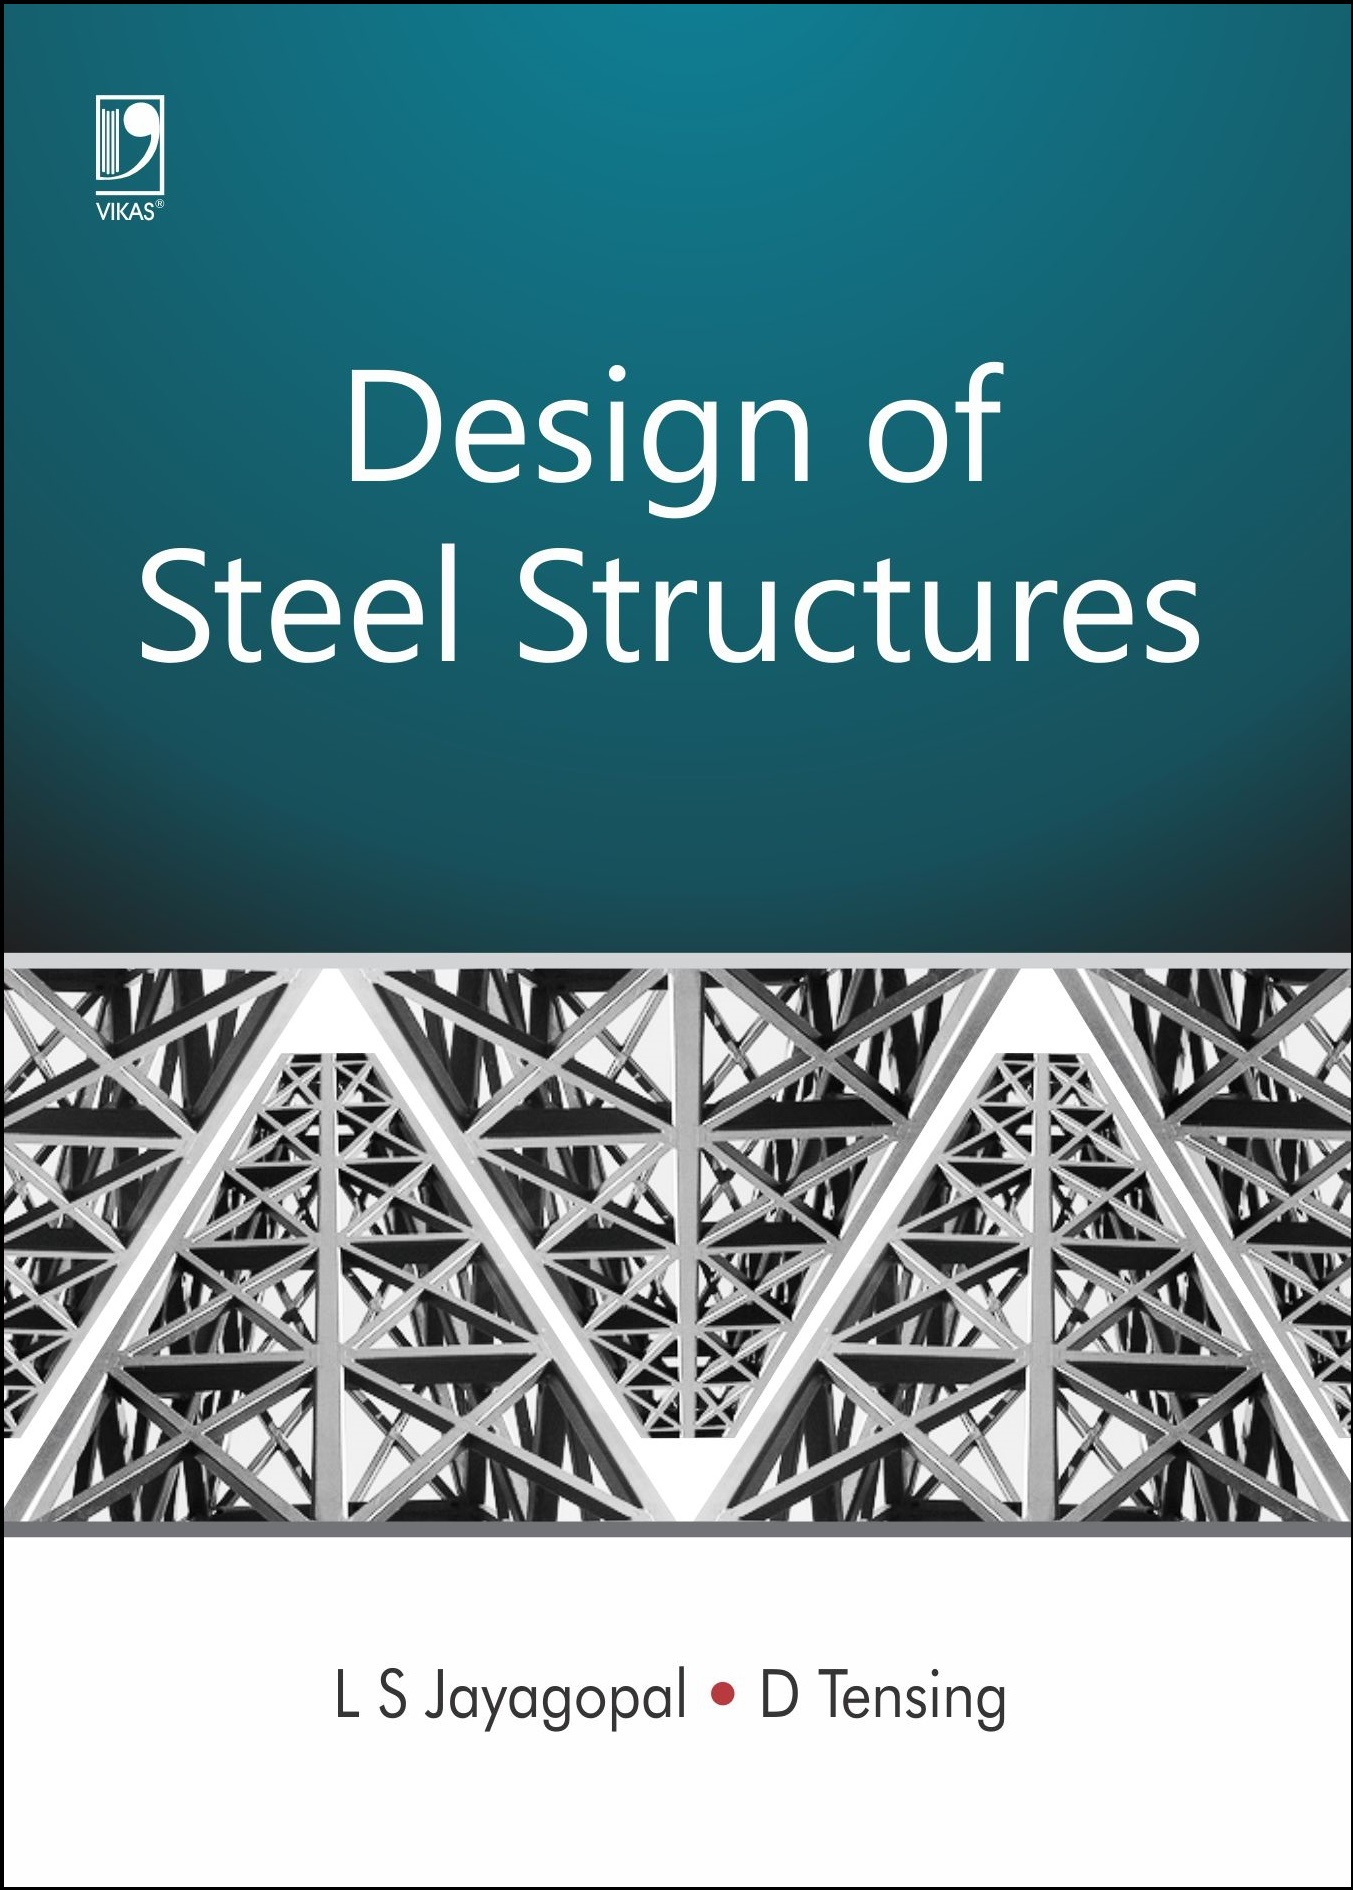 DESIGN OF STEEL STRUCTURES by  DR L S JAYAGOPAL